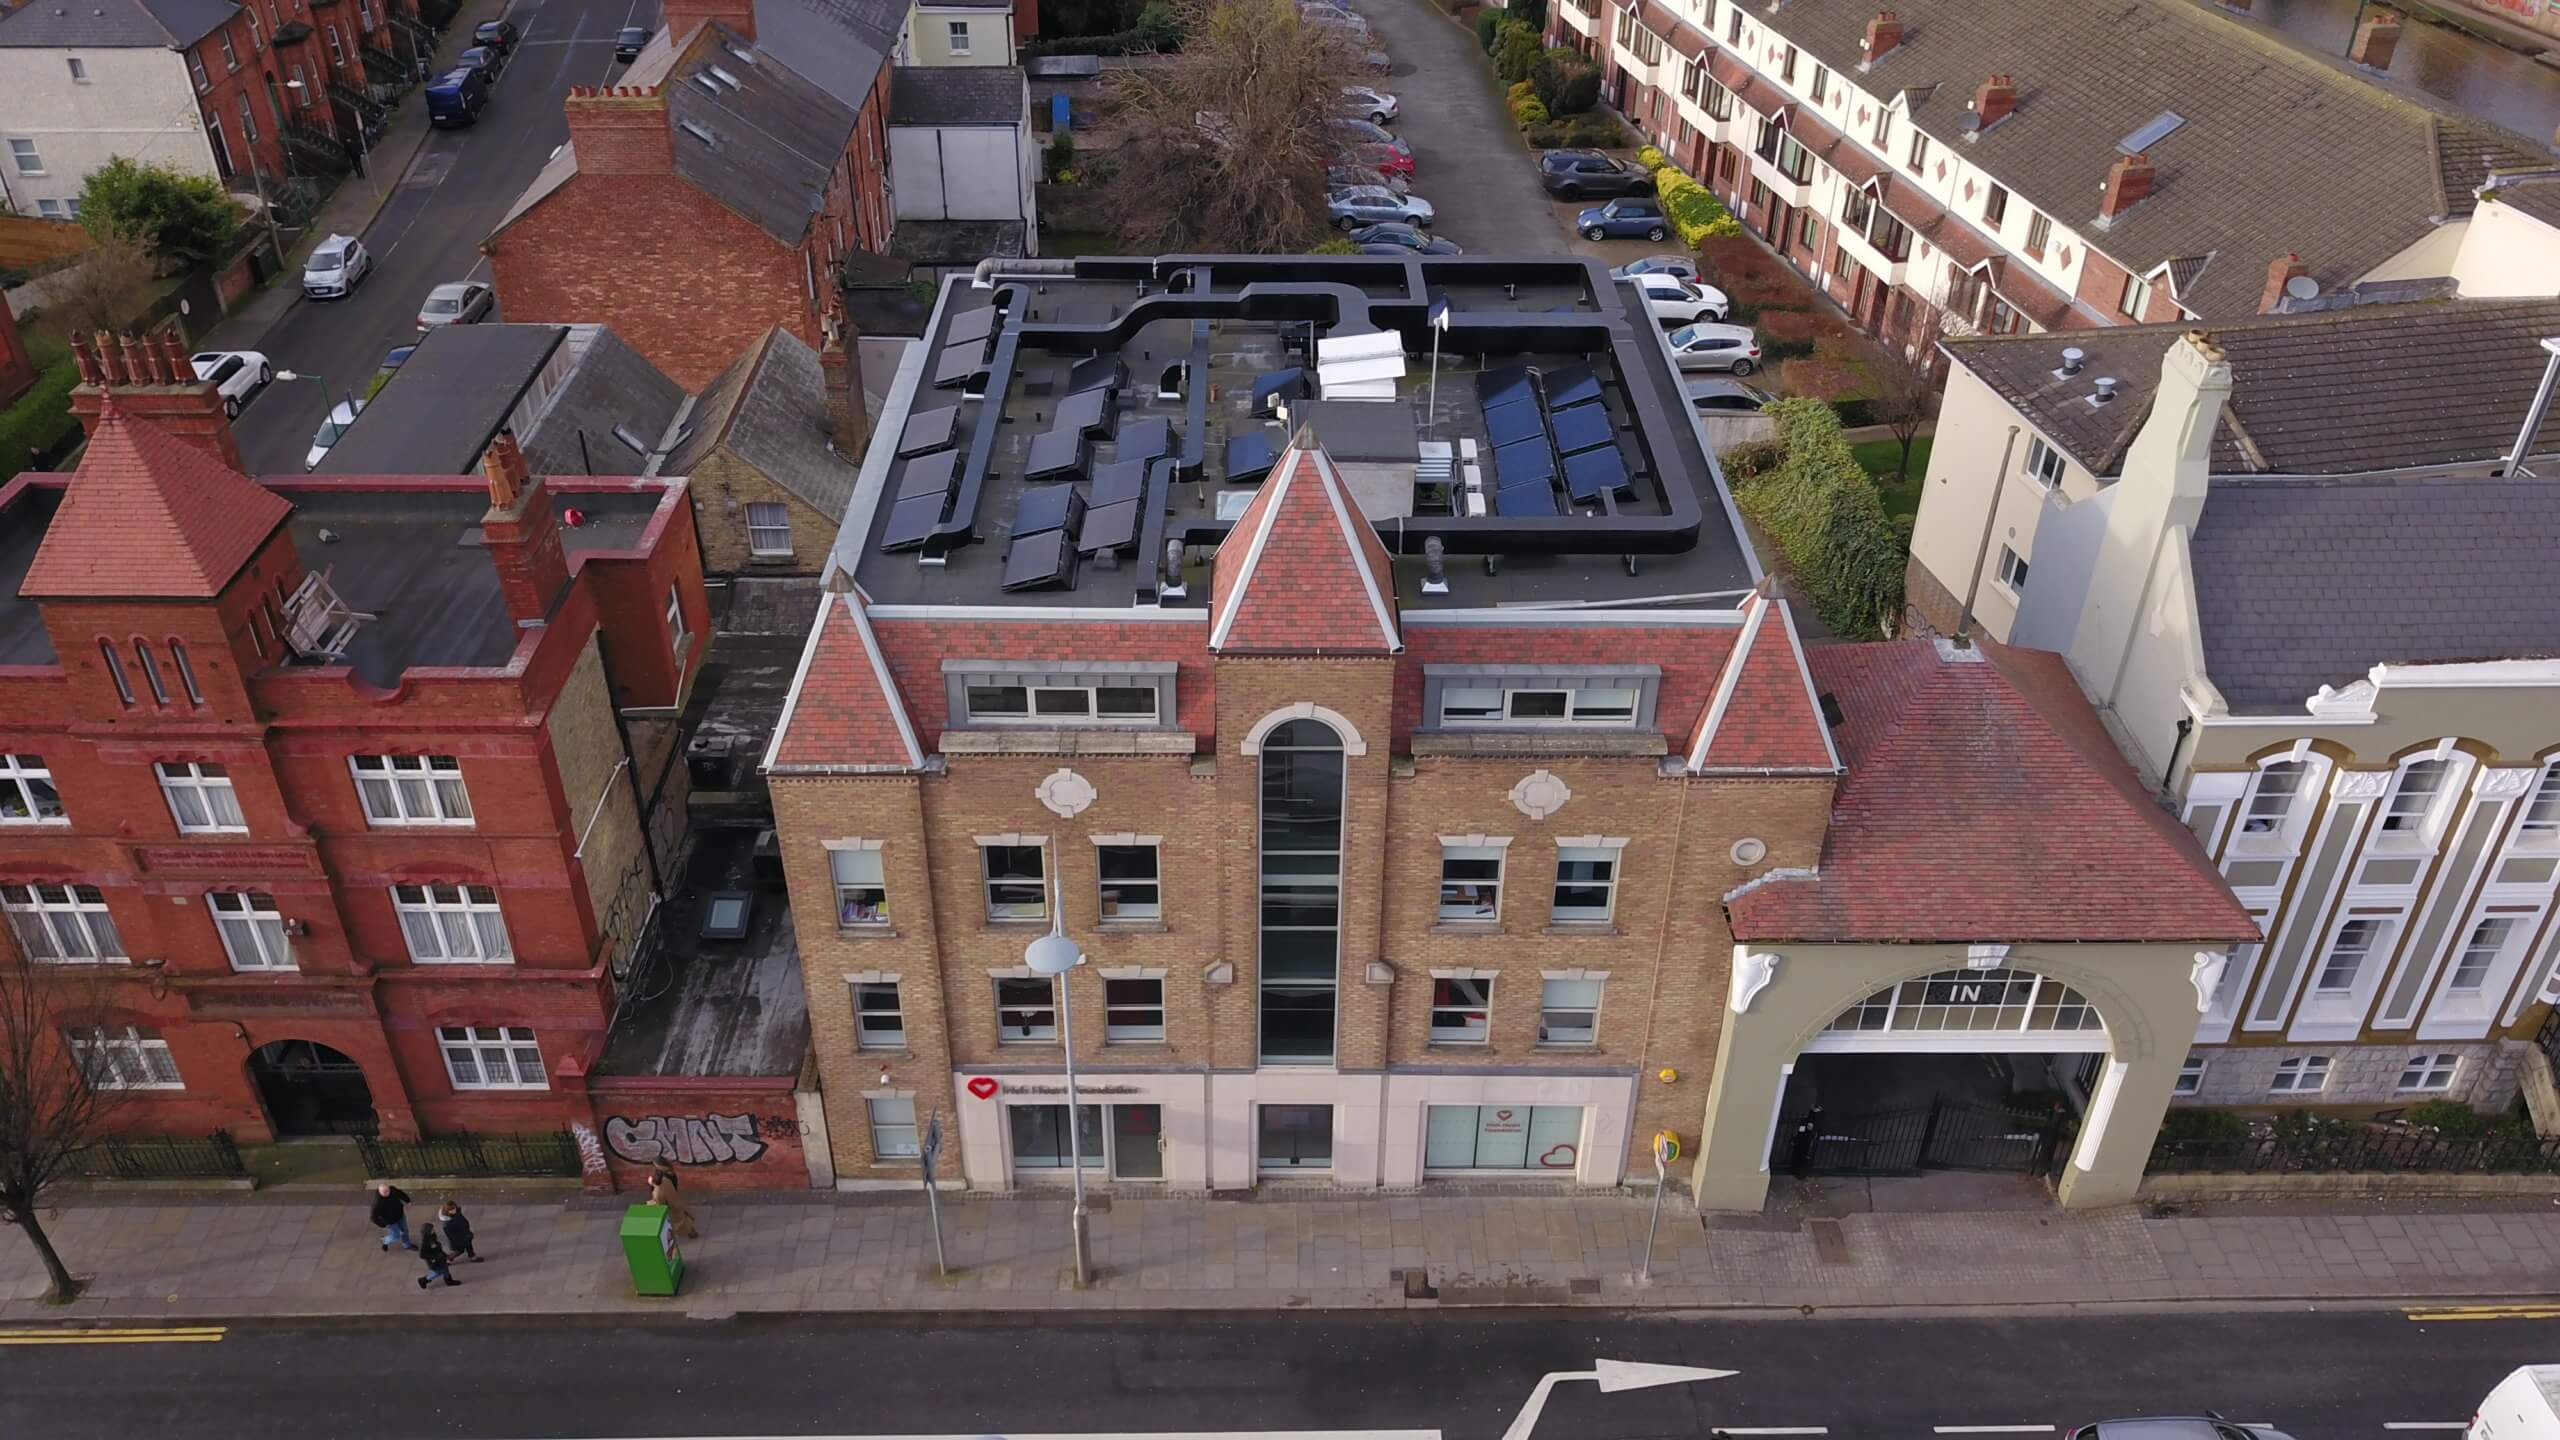 COMPLETION OF IRISH HEART FOUNDATION COMMERCIAL ROOF INSTALL